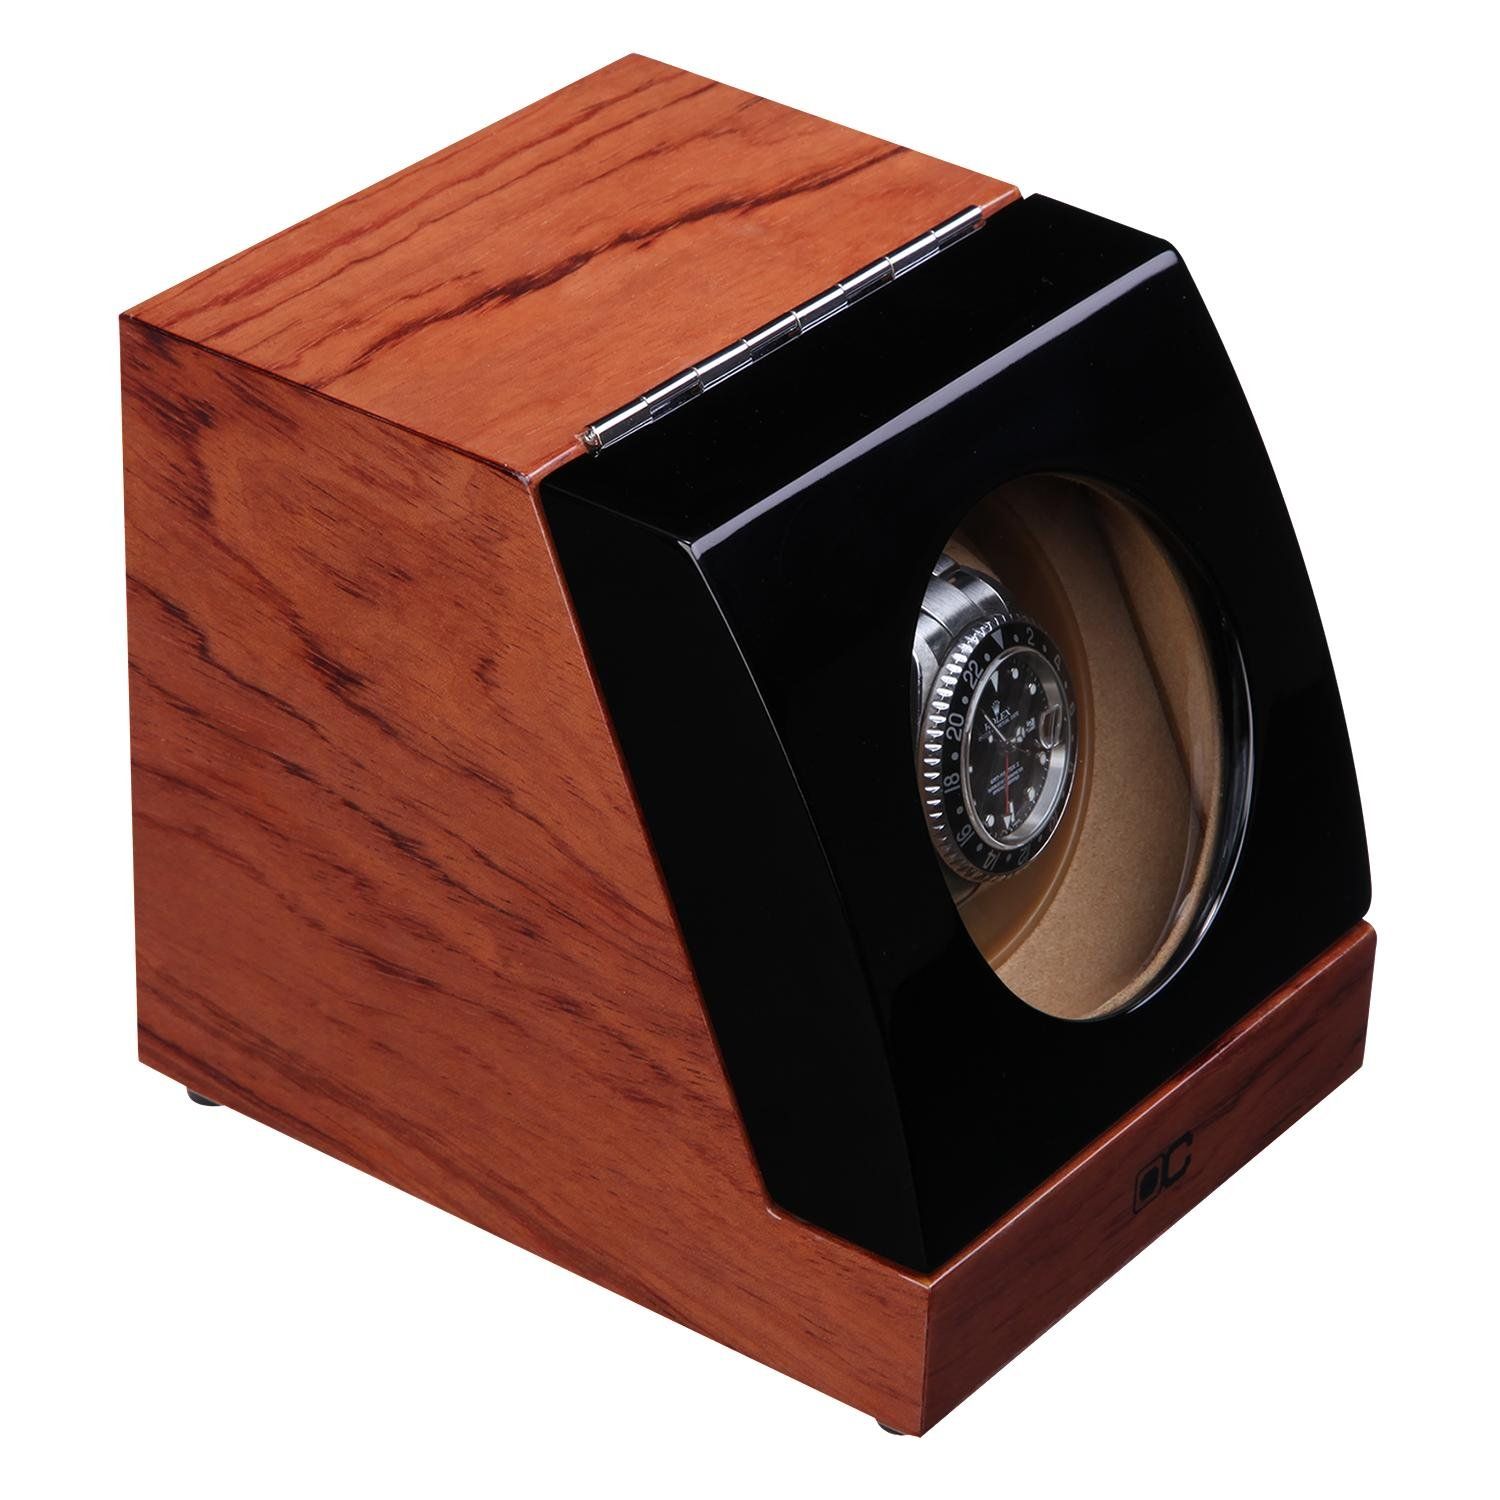 KAIHE-BOX Classic Watch Winders for 1 Watches for automatic Watch Winder Rotator Case Cover Storage H , #1 by KAIHE-BOX (Image #4)